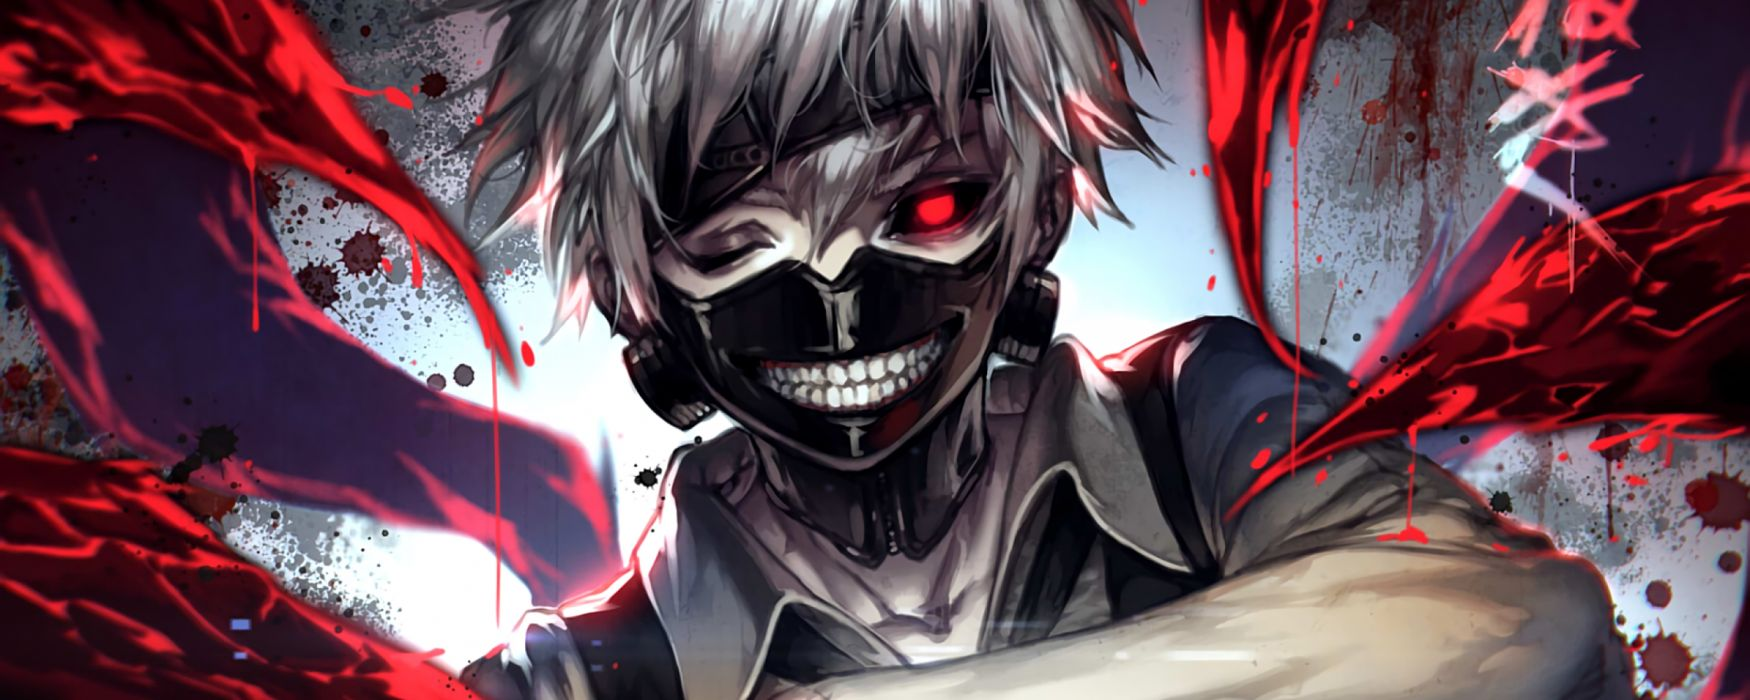 16+ Awesome Hd Anime Dual Screen Wallpaper Download ...